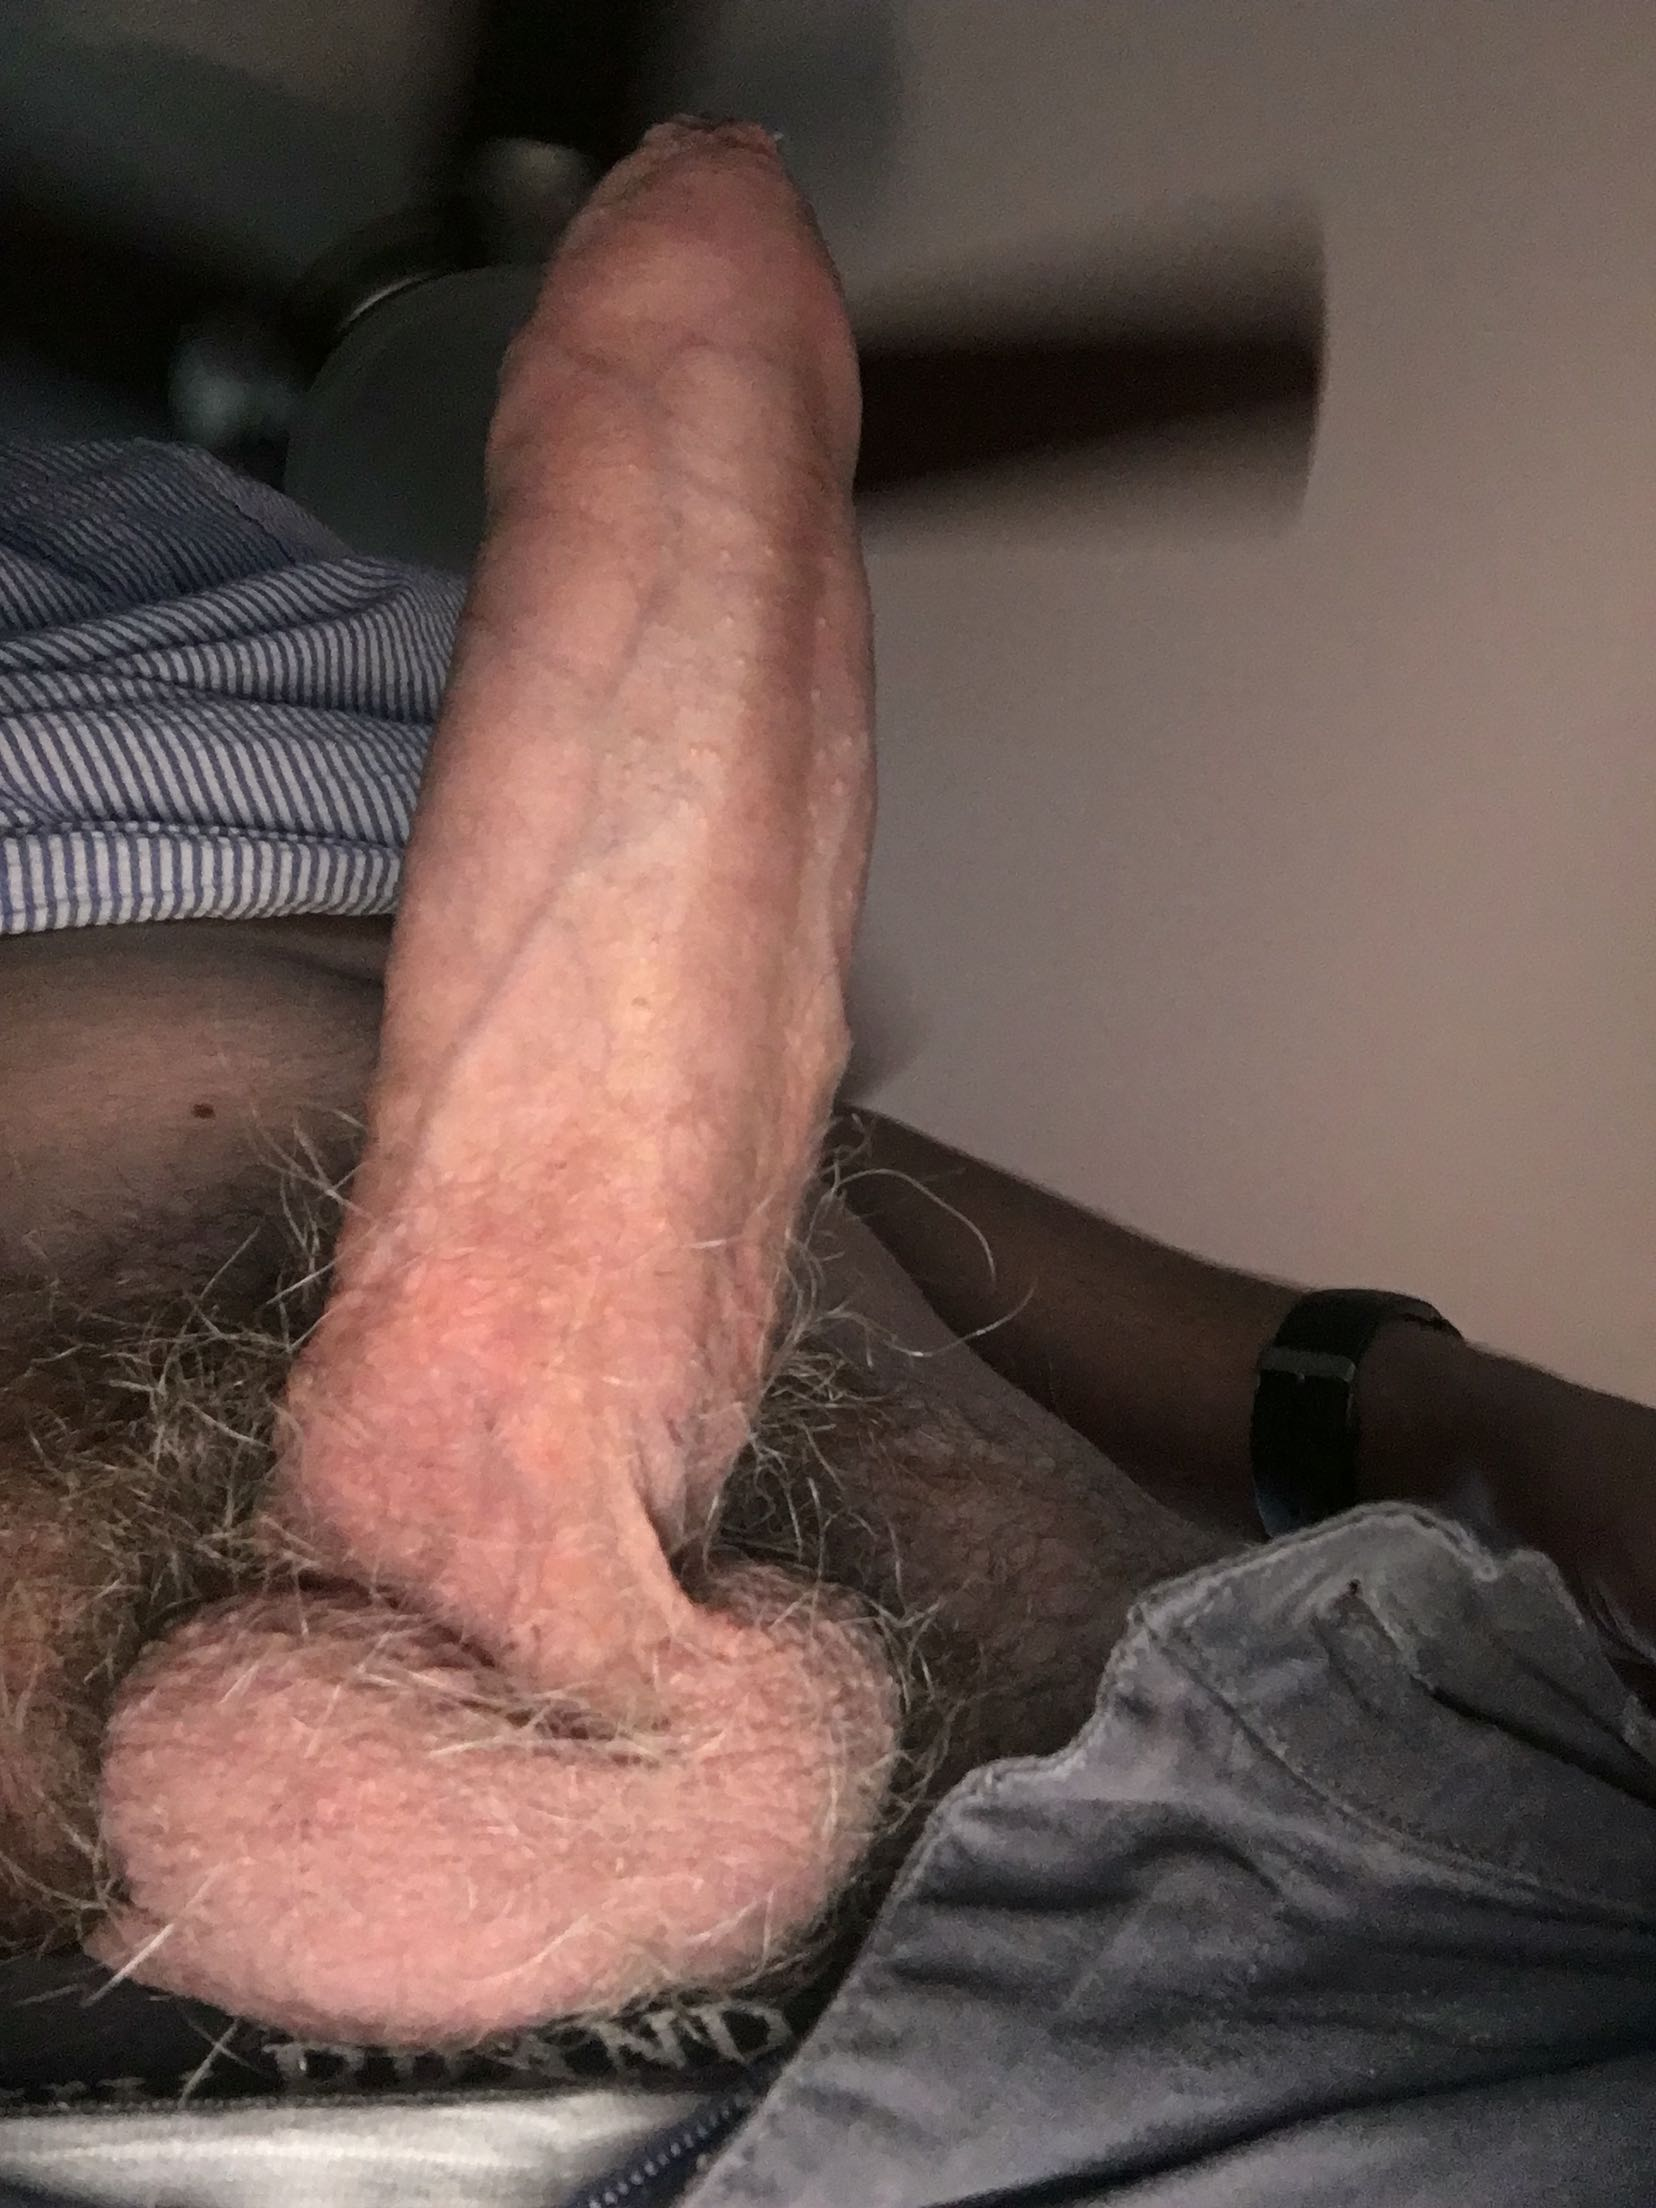 Pics of hard dicks gay porn first time